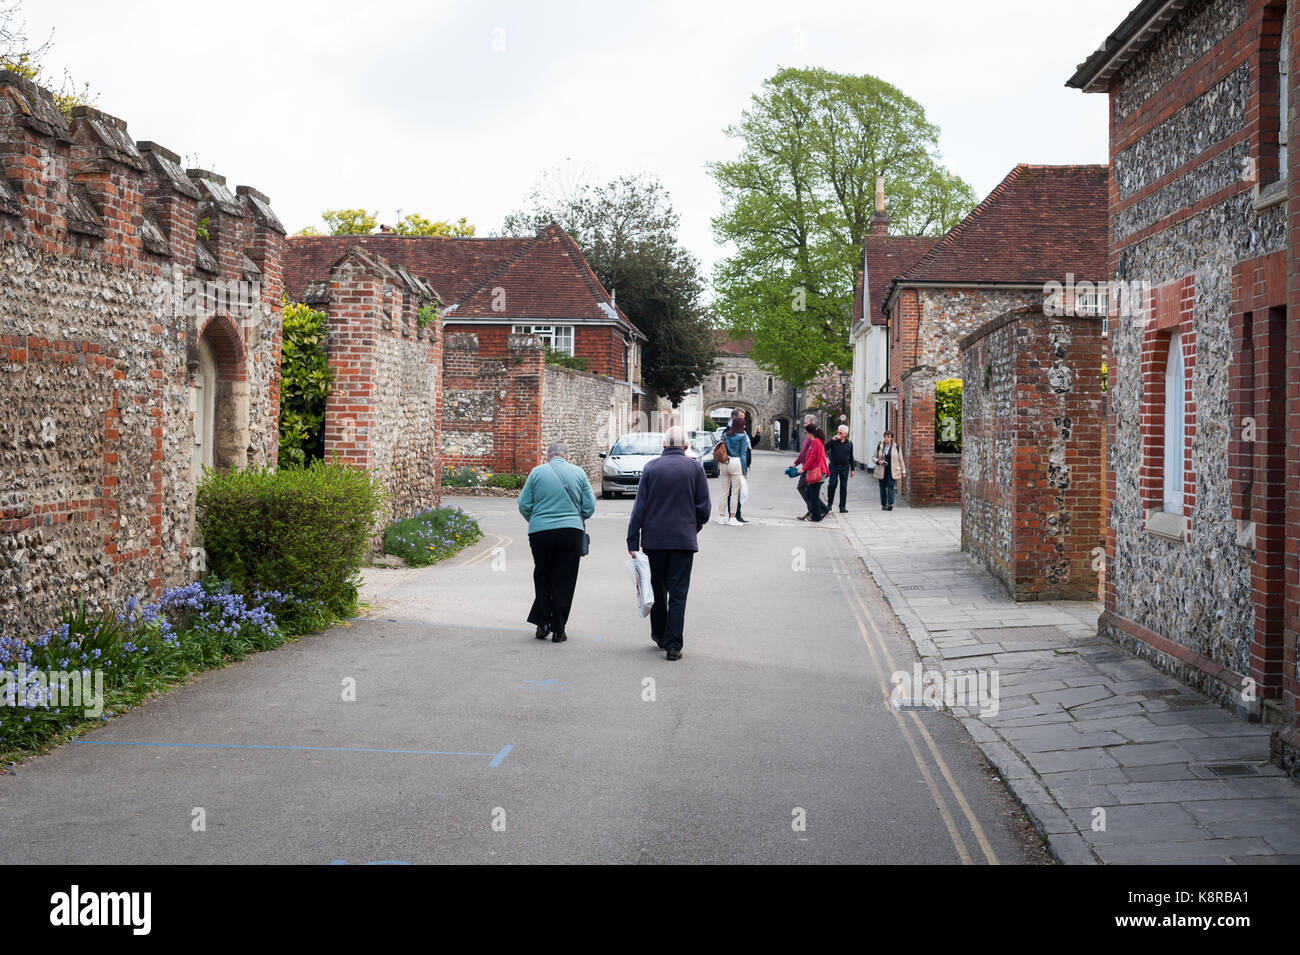 People walk down a road and past red brick buildings in Chichester, West Sussex, England. Stock Photo